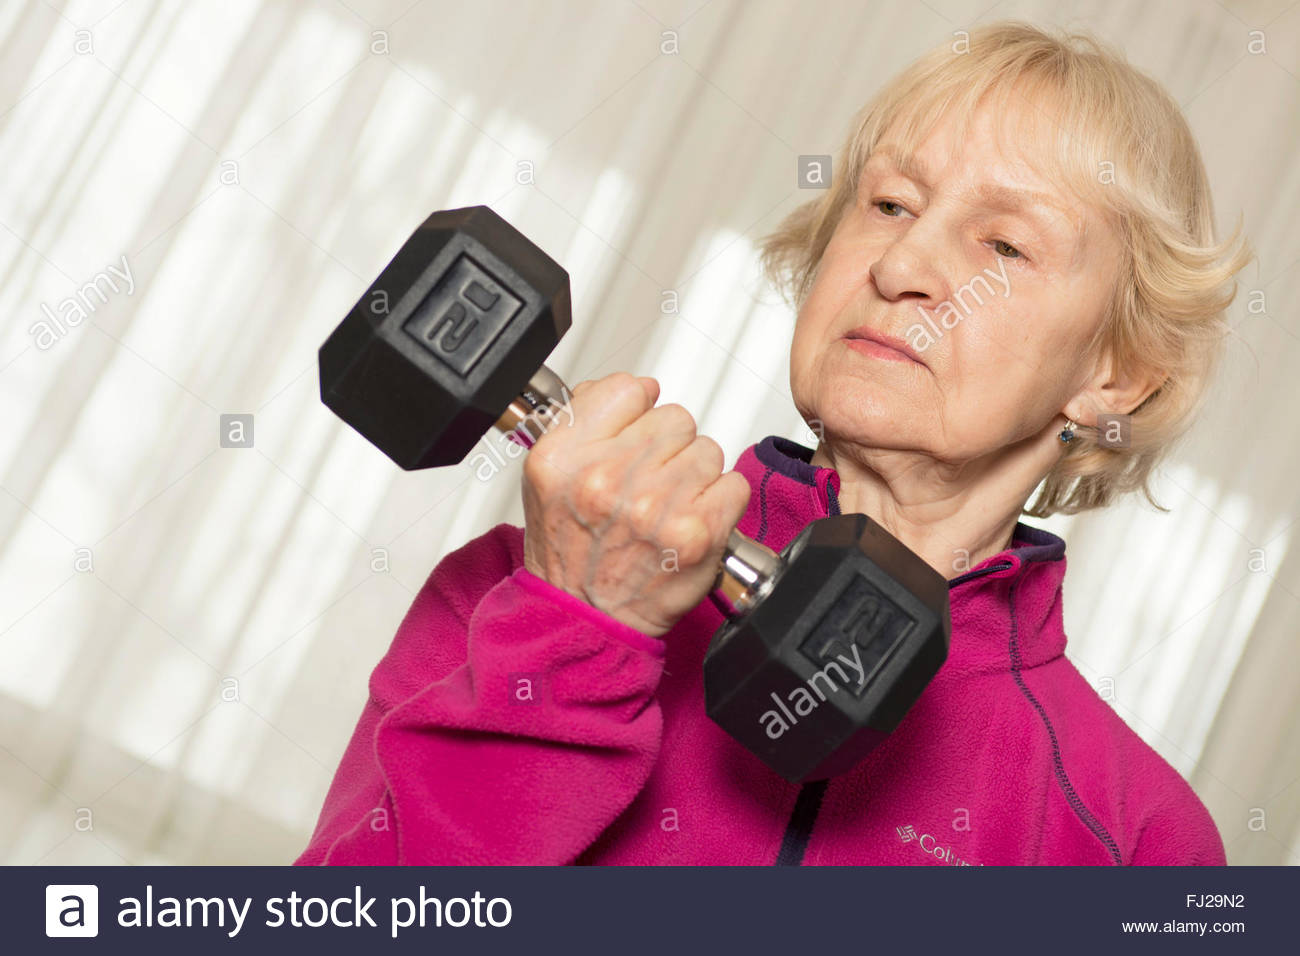 Senior Woman Dumbbell, Elderly Lifting Weights, Weight Training with Dumbbells, 77 year old at home - Stock Image